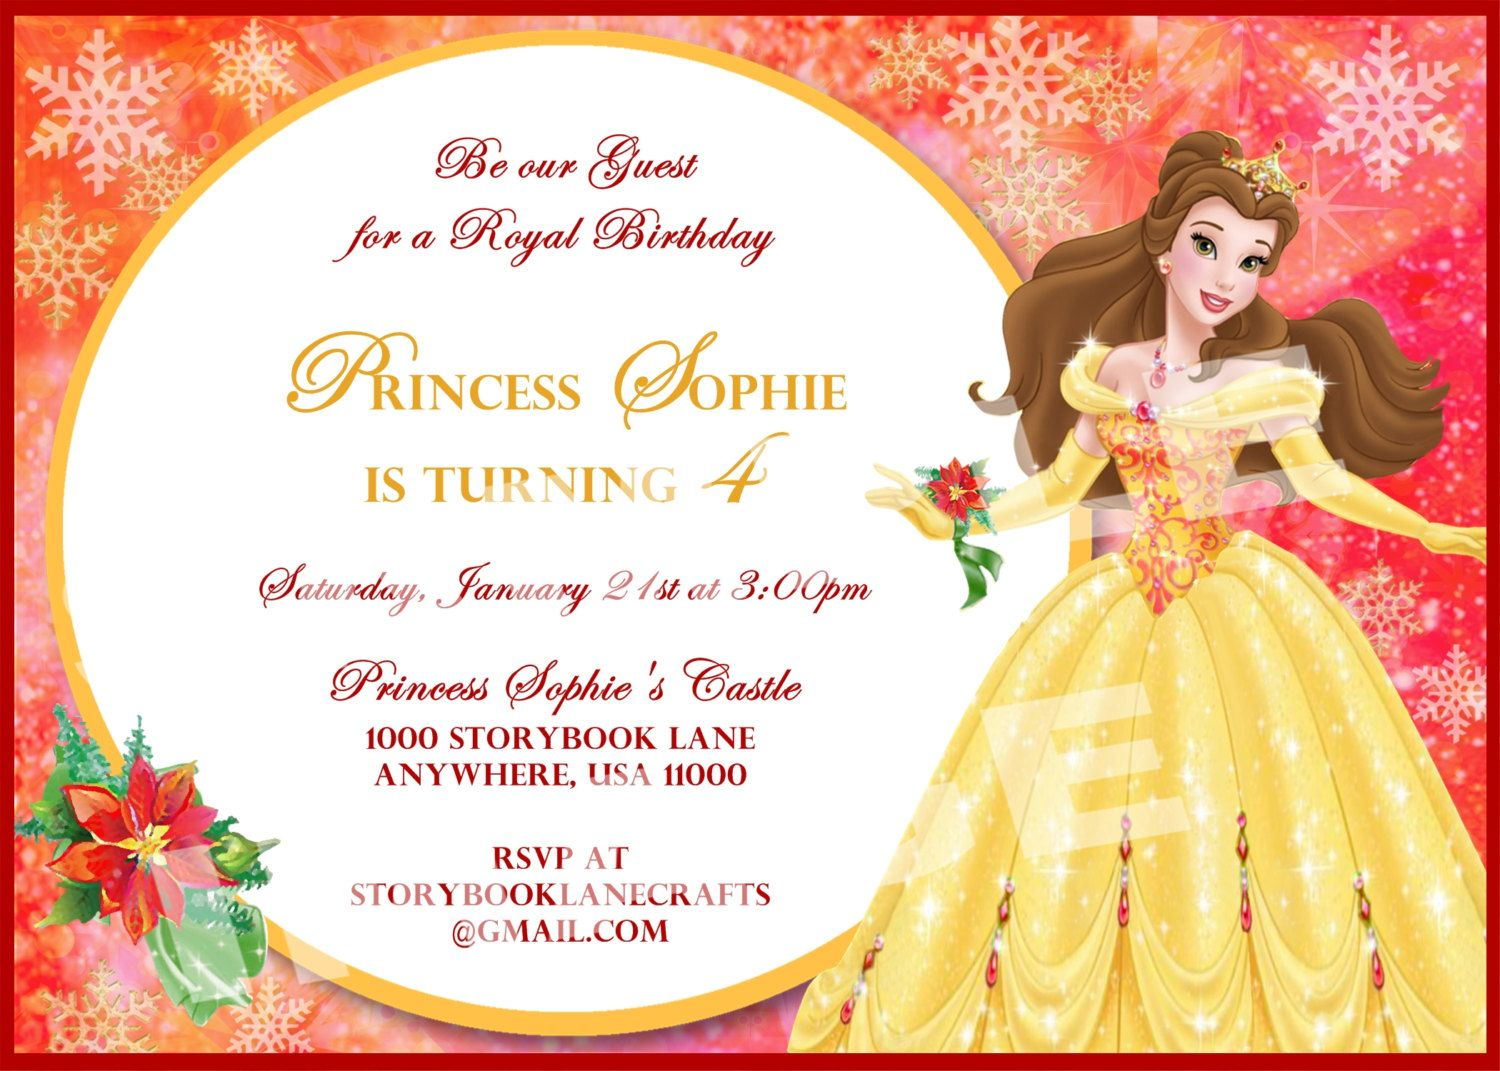 Beauty and the Beast Invitation Belle Invitation